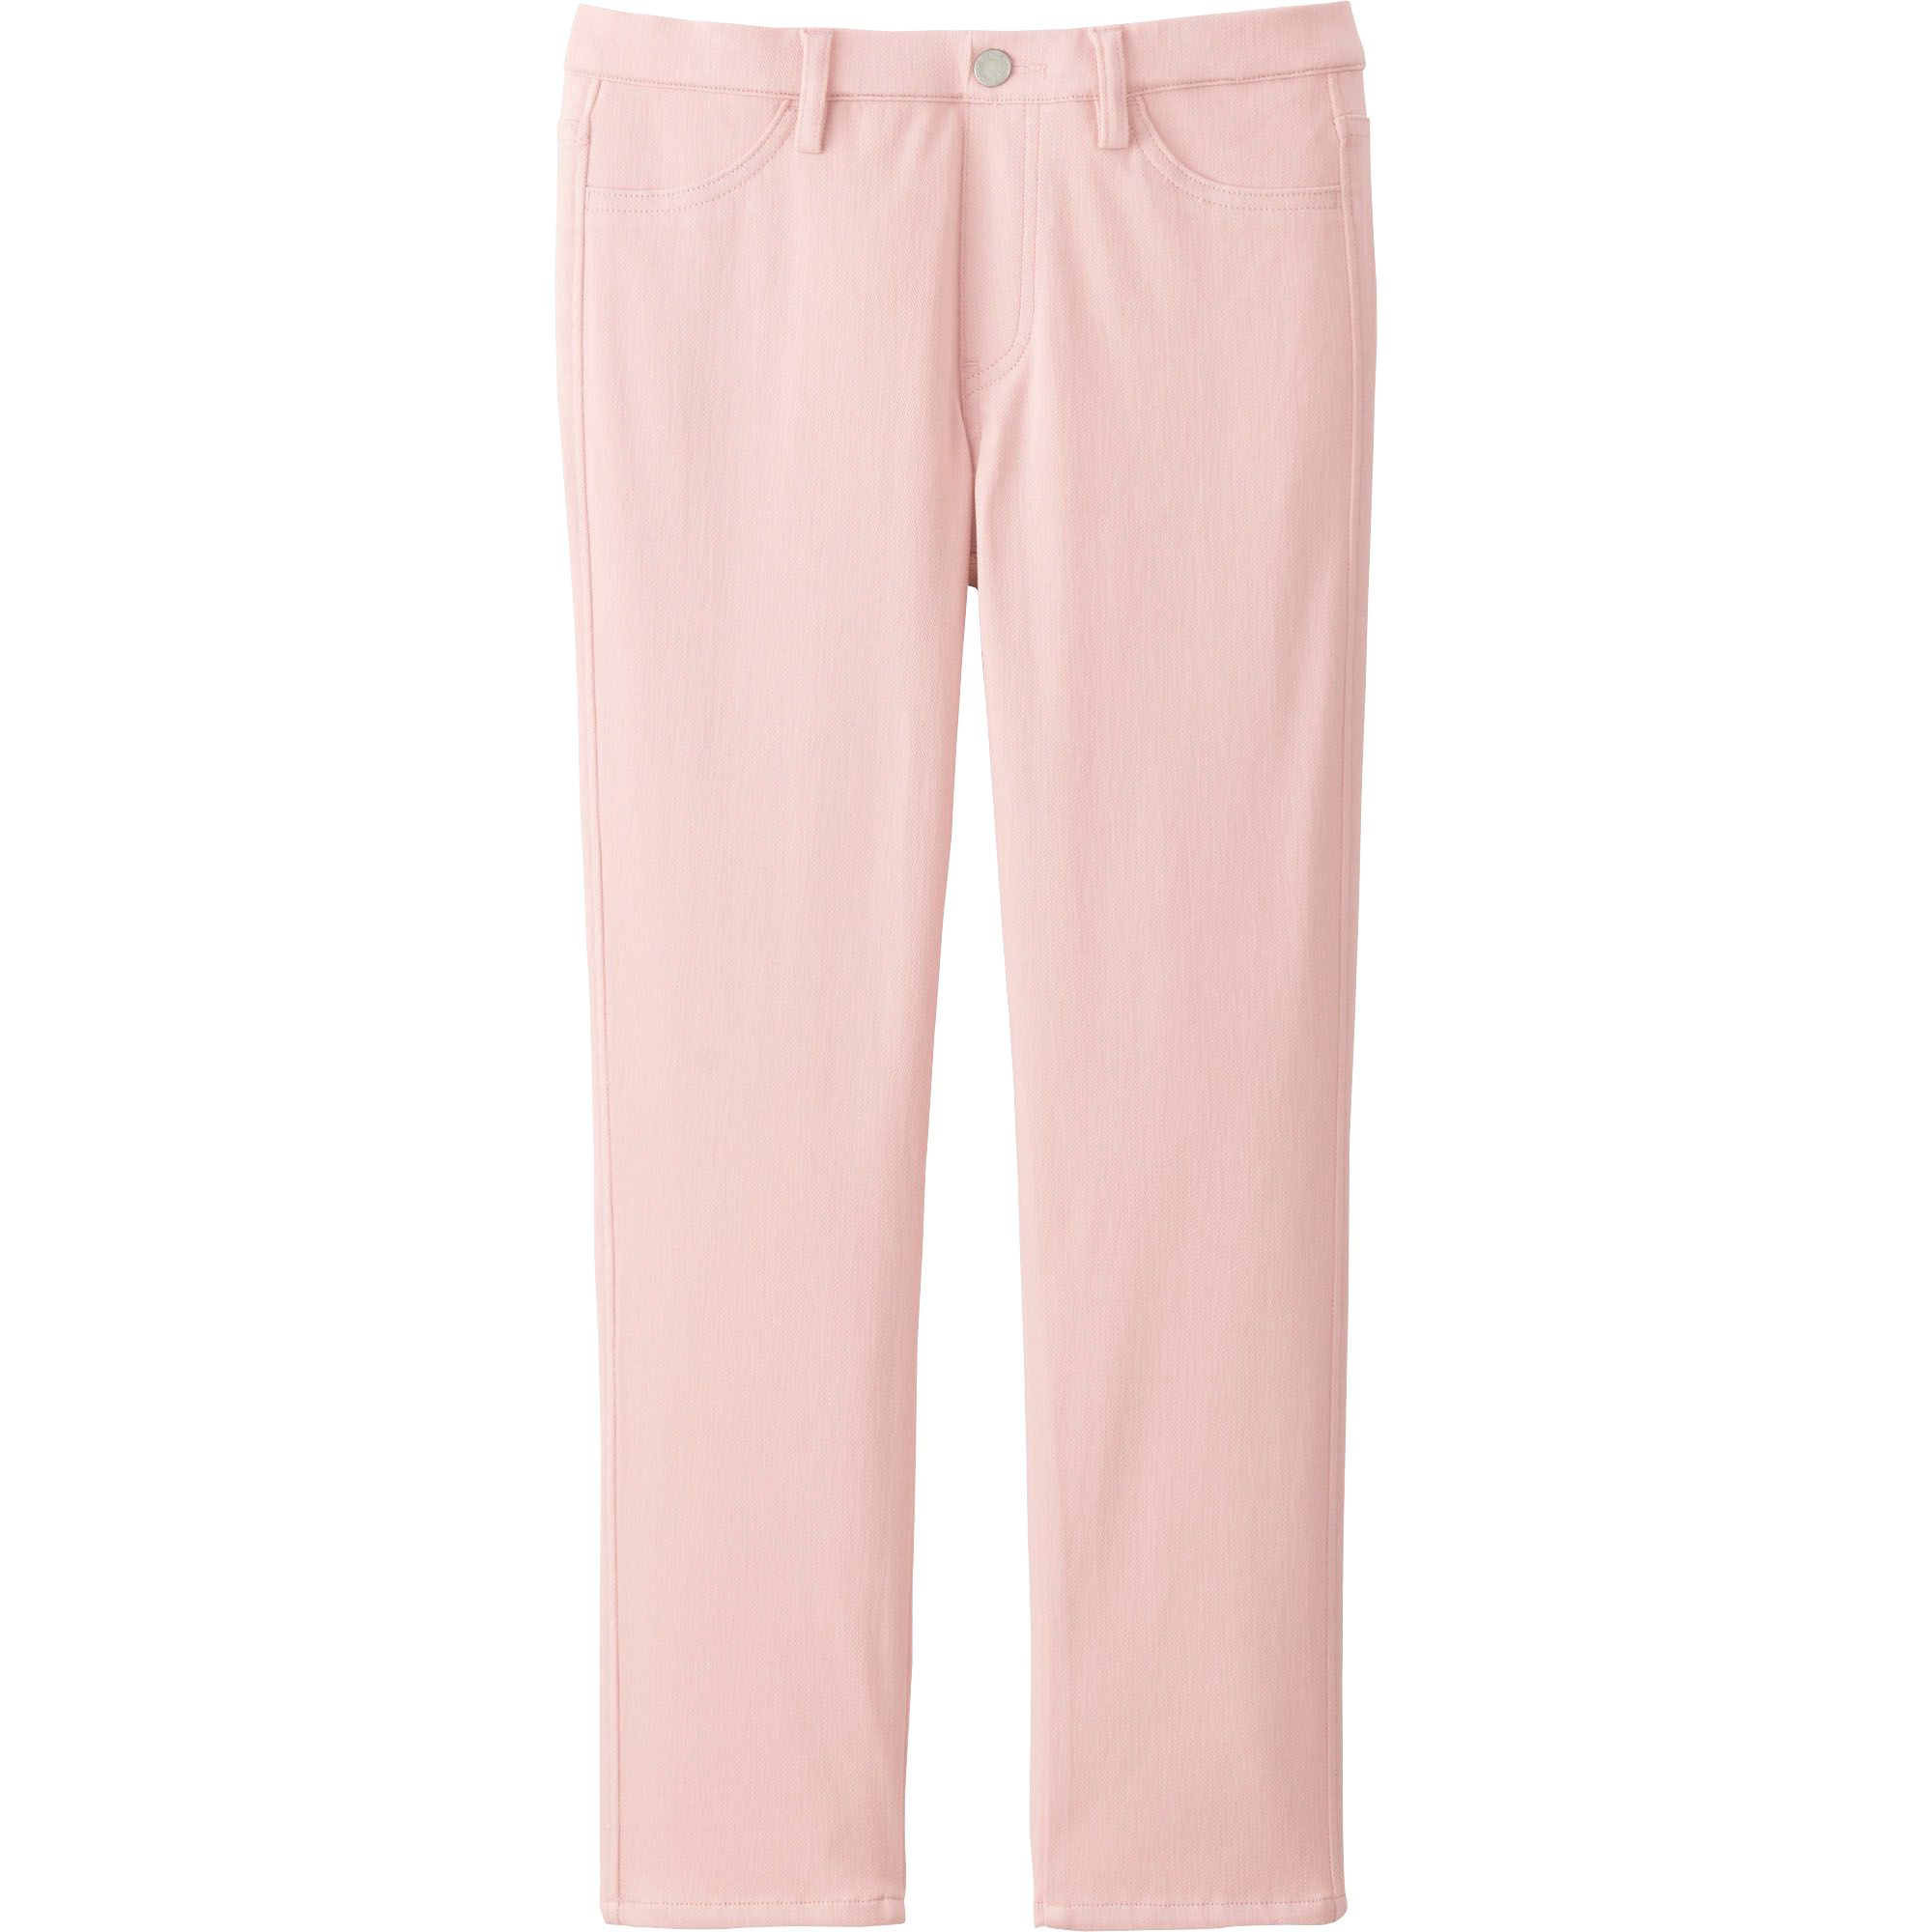 Awesome WOMEN Stretch Cropped Pants - Pants - BOTTOMS - WOMEN | UNIQLO